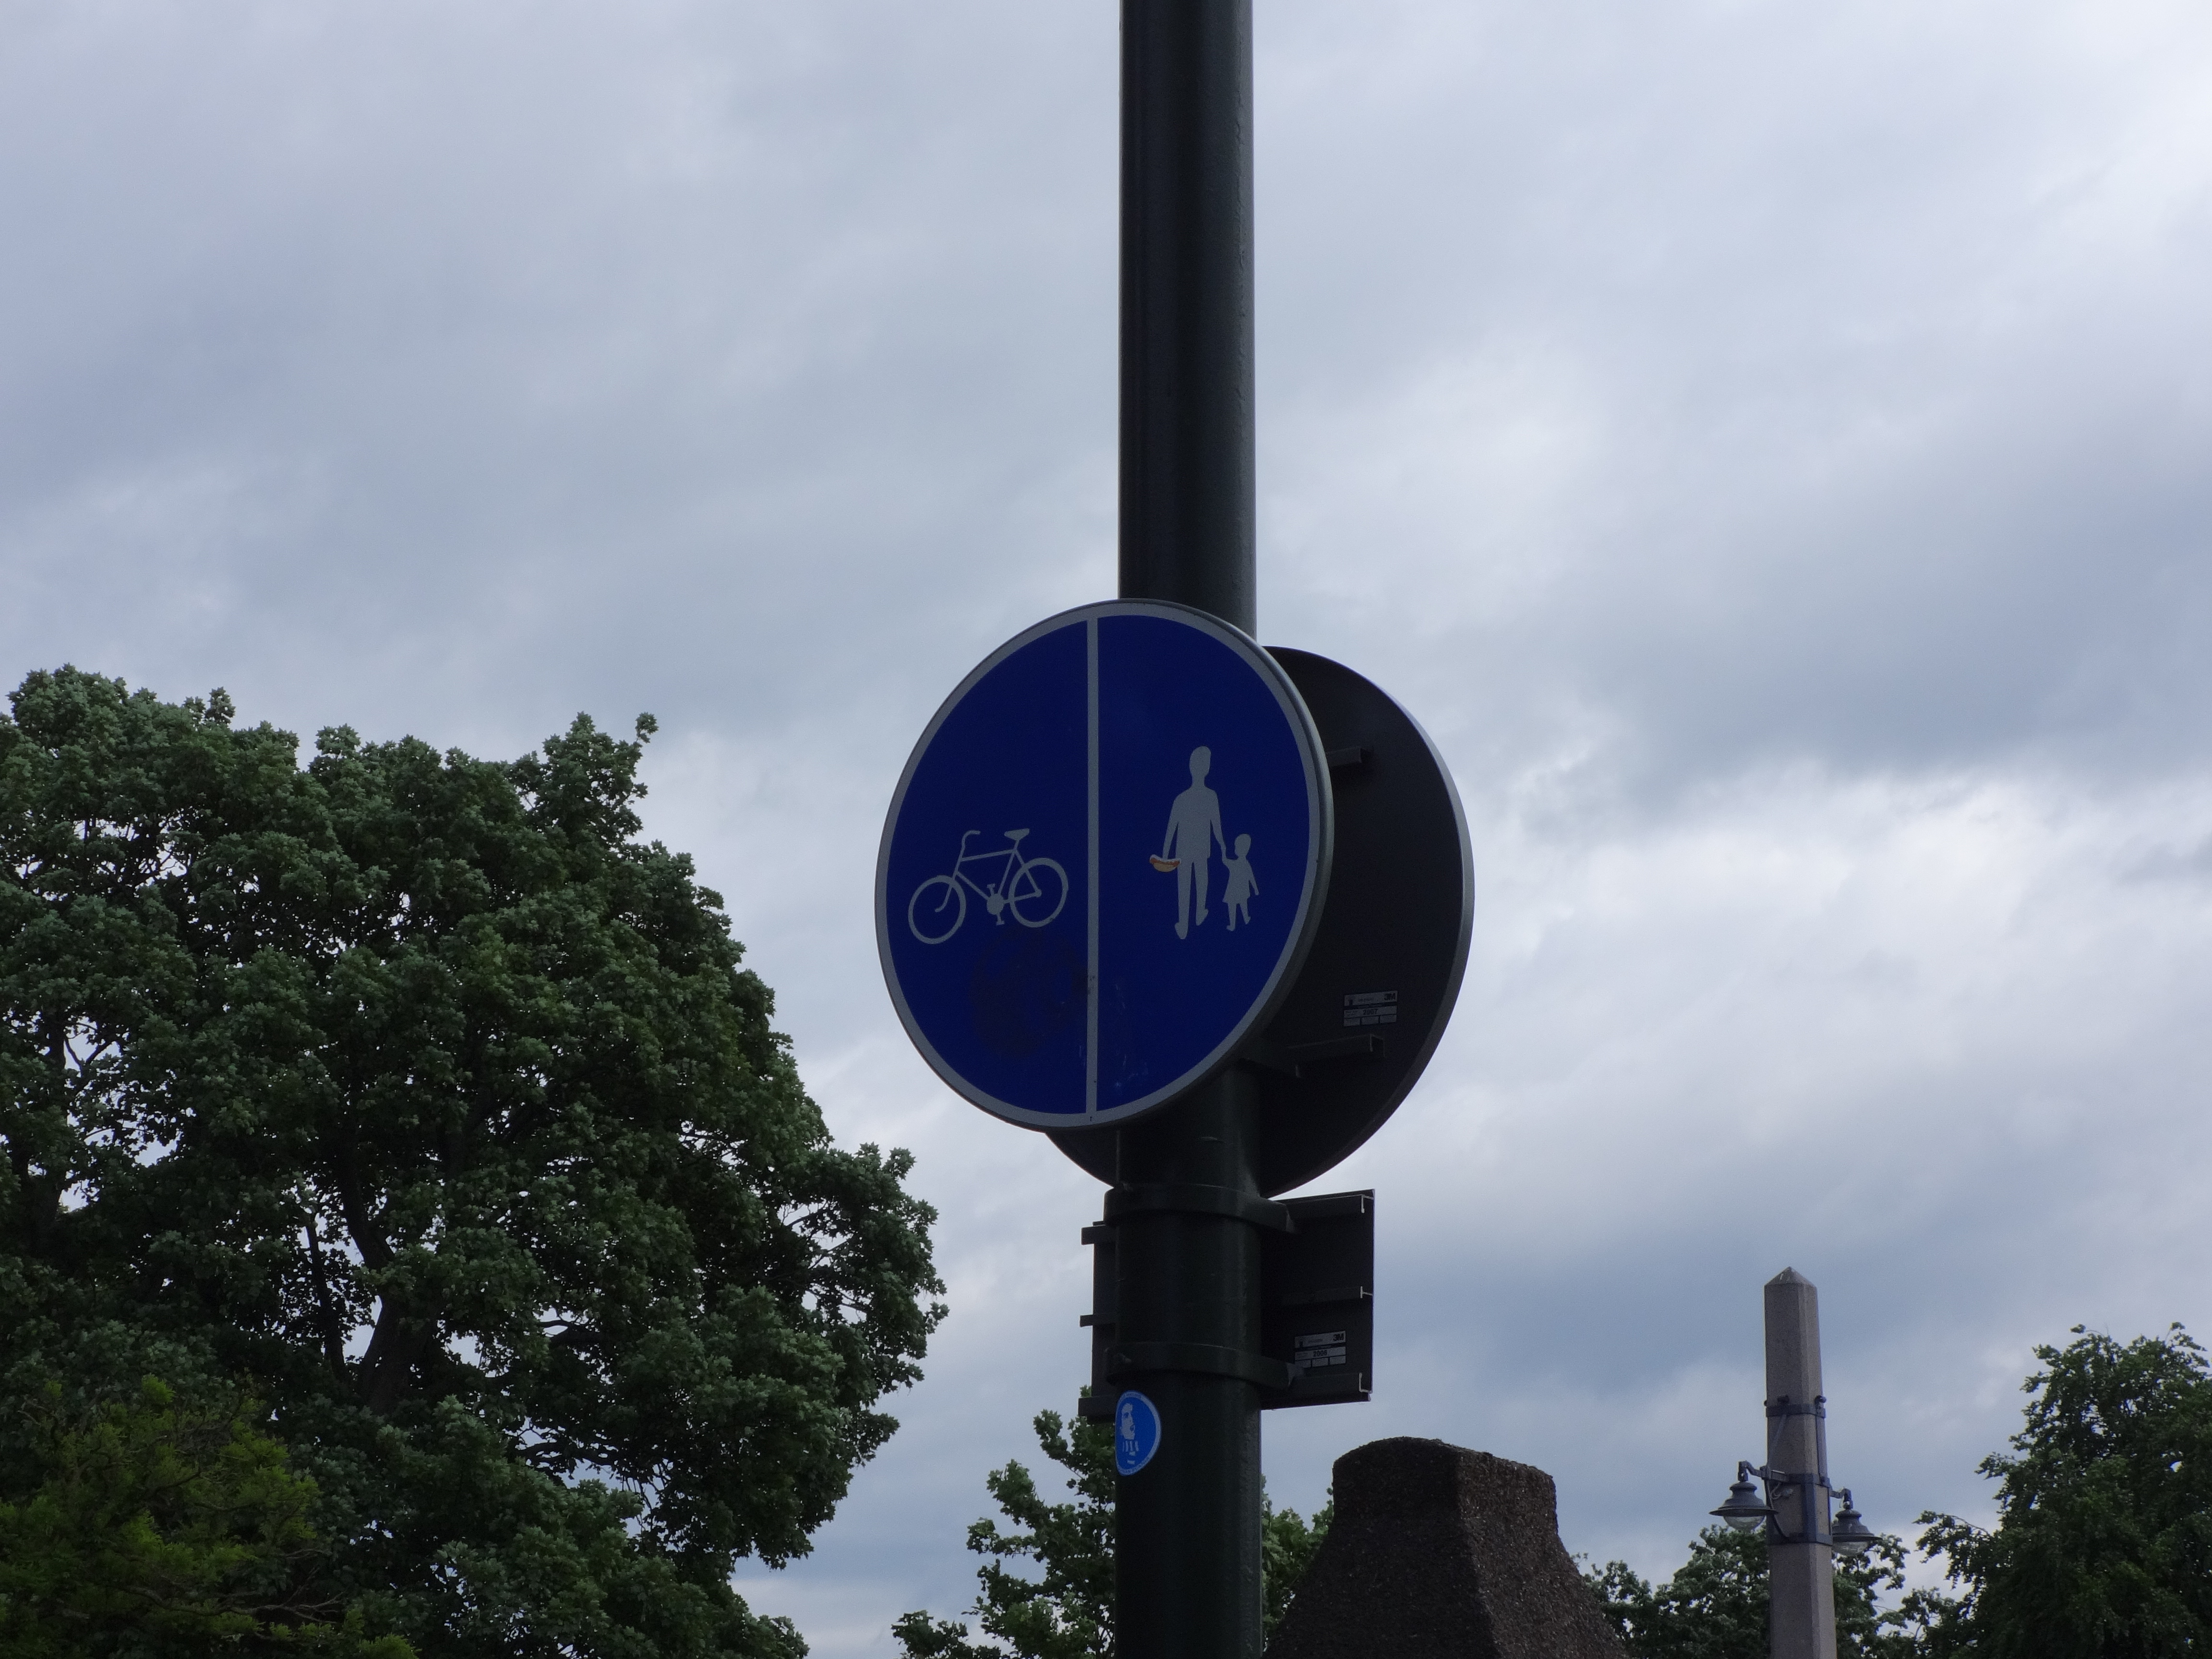 Sign signalling that bikes are on the left, pedestrians on the right (generally bikes would have smooth asphalt, while the pedestrians would have interlocking brick, etc.)